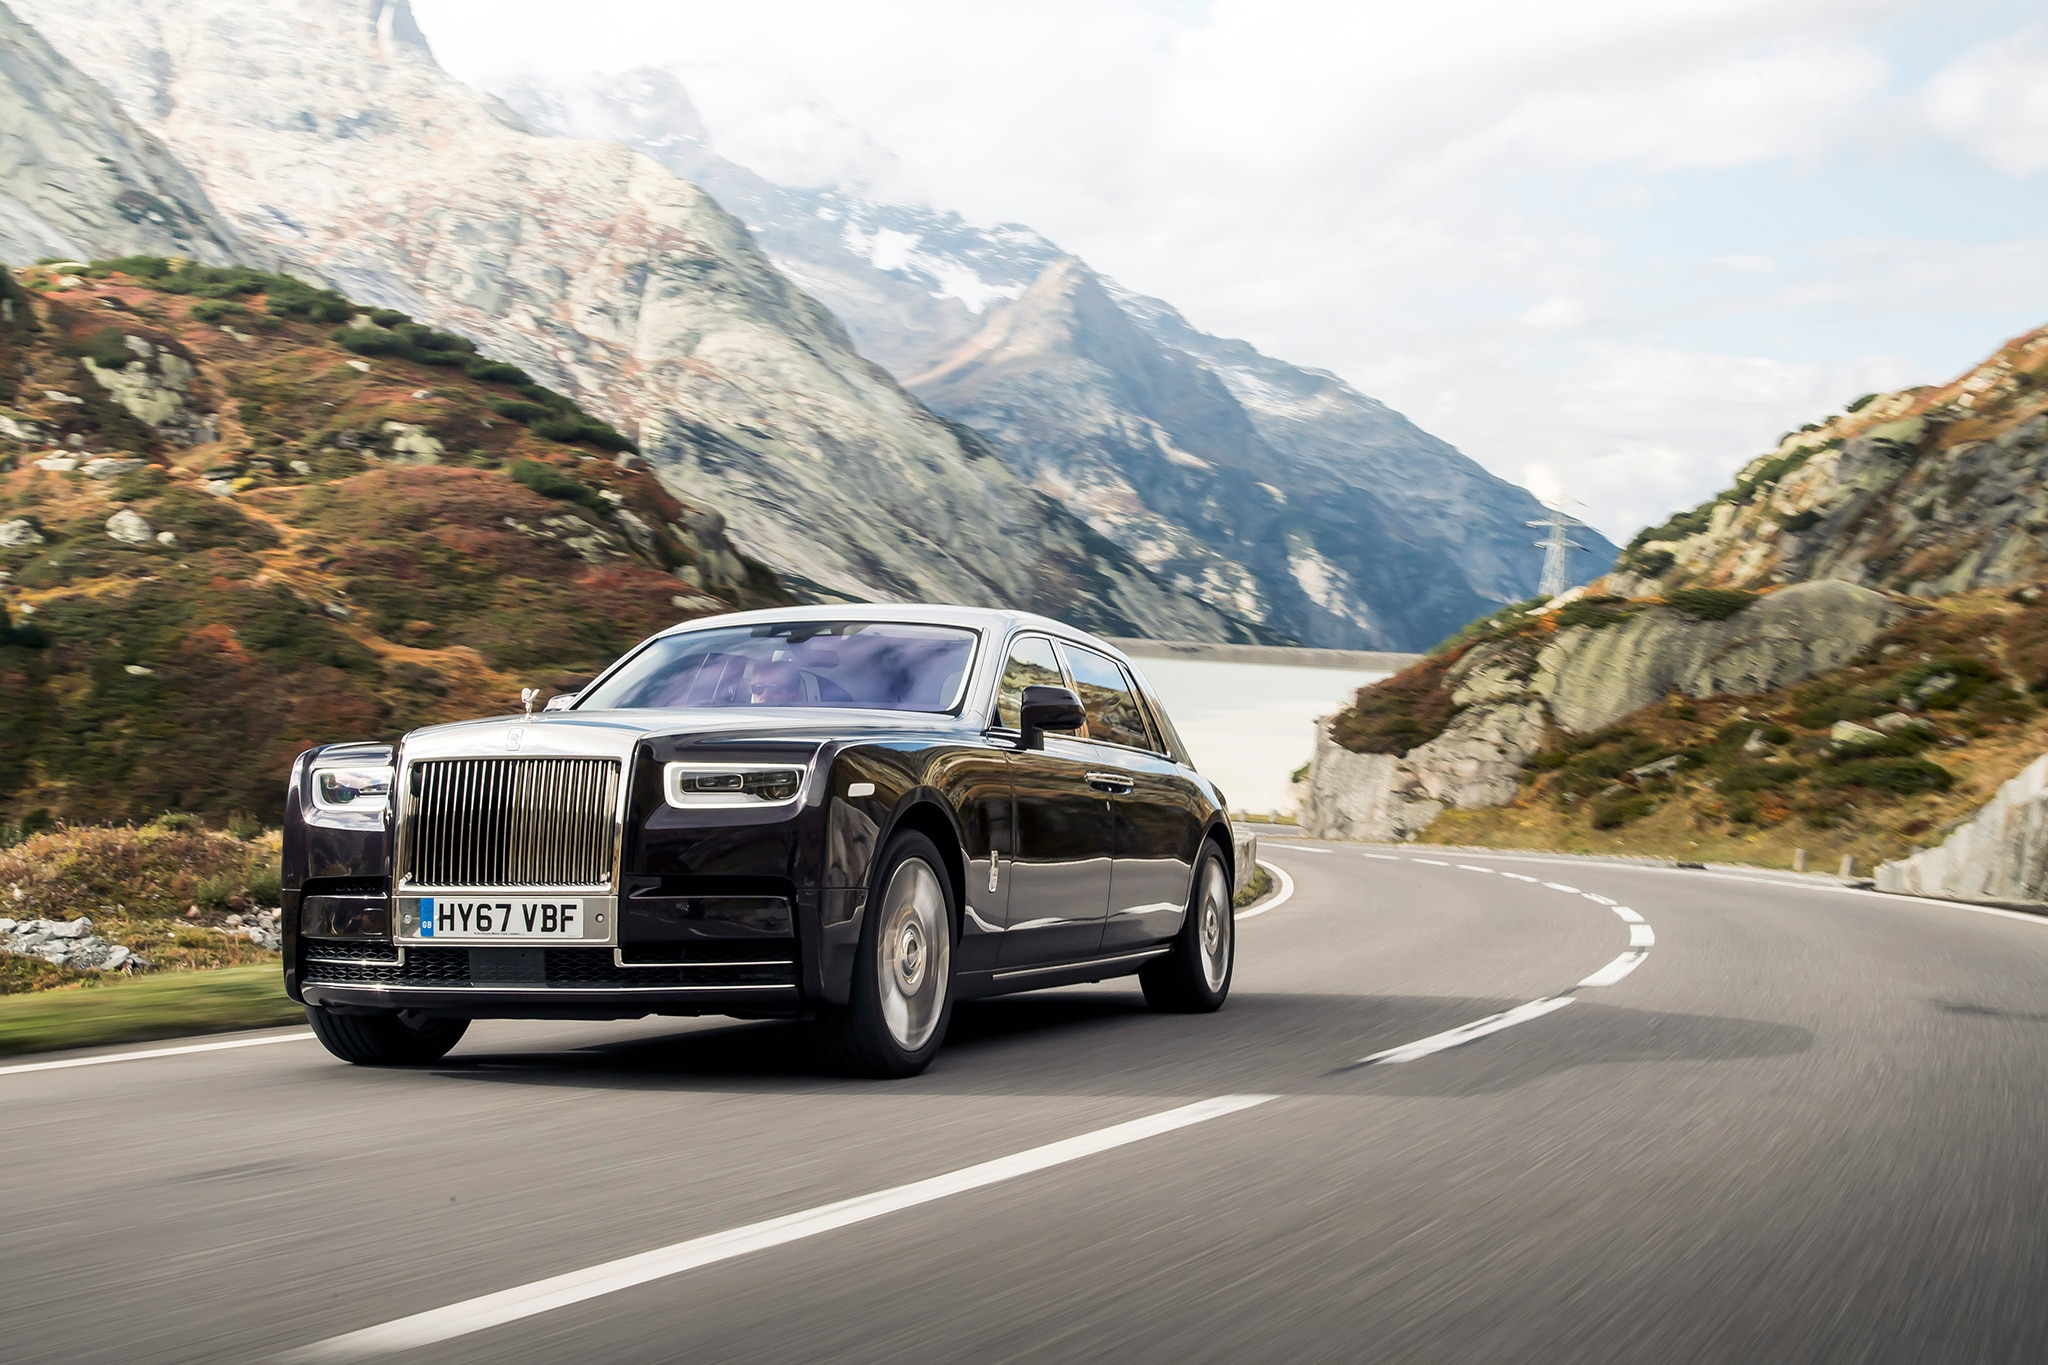 2018 Rolls Royce Phantom VIII Extended Wheelbase Front Three Quarter In Motion 05